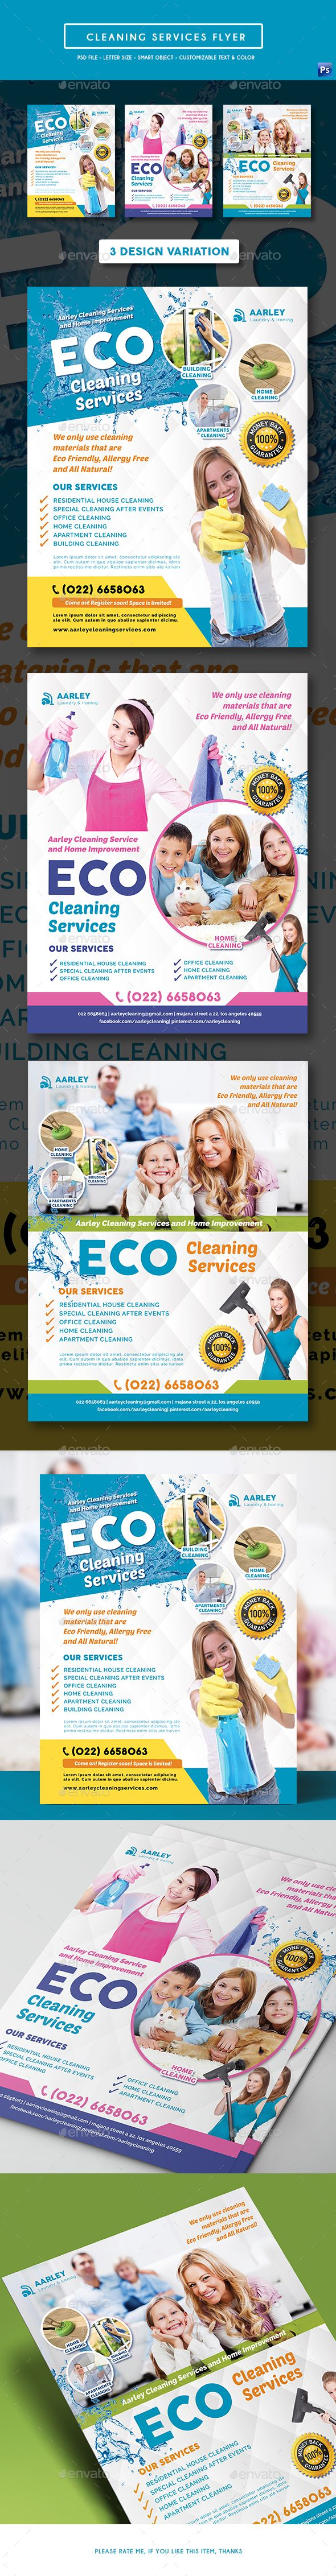 Cleaning Services Flyer Corporate Flyers Download here